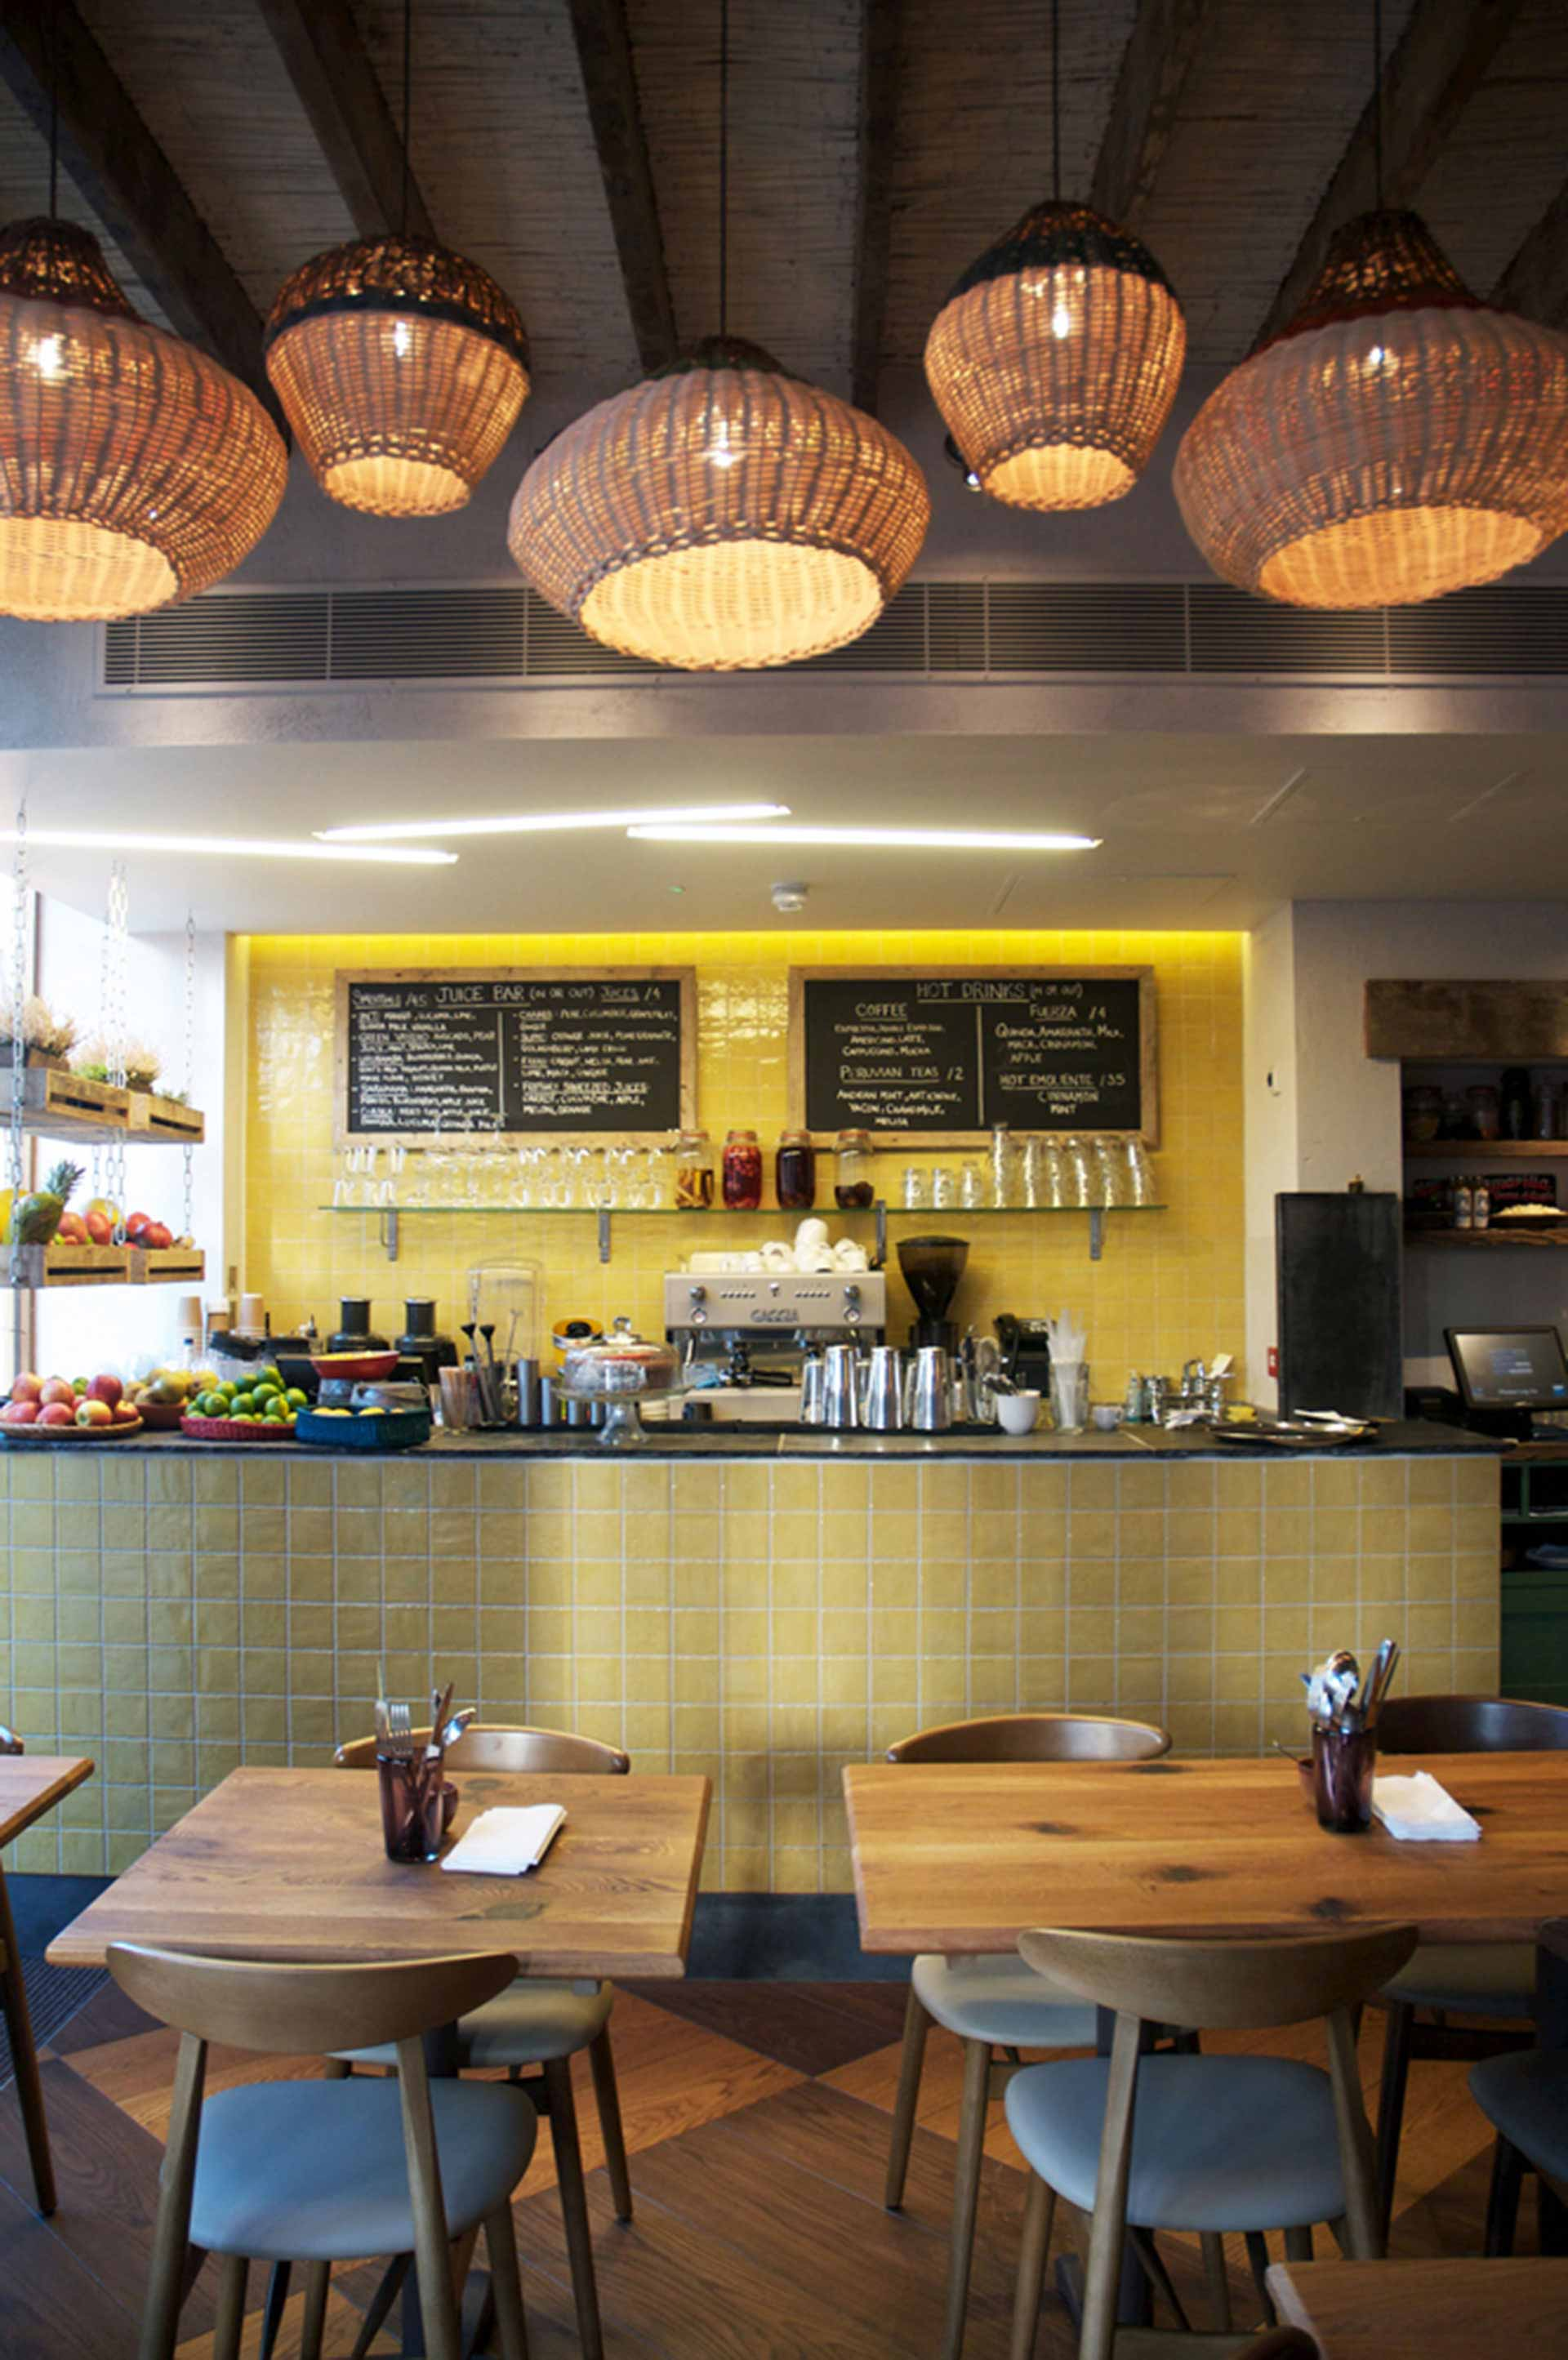 Cove pendant lights installed in Cafe